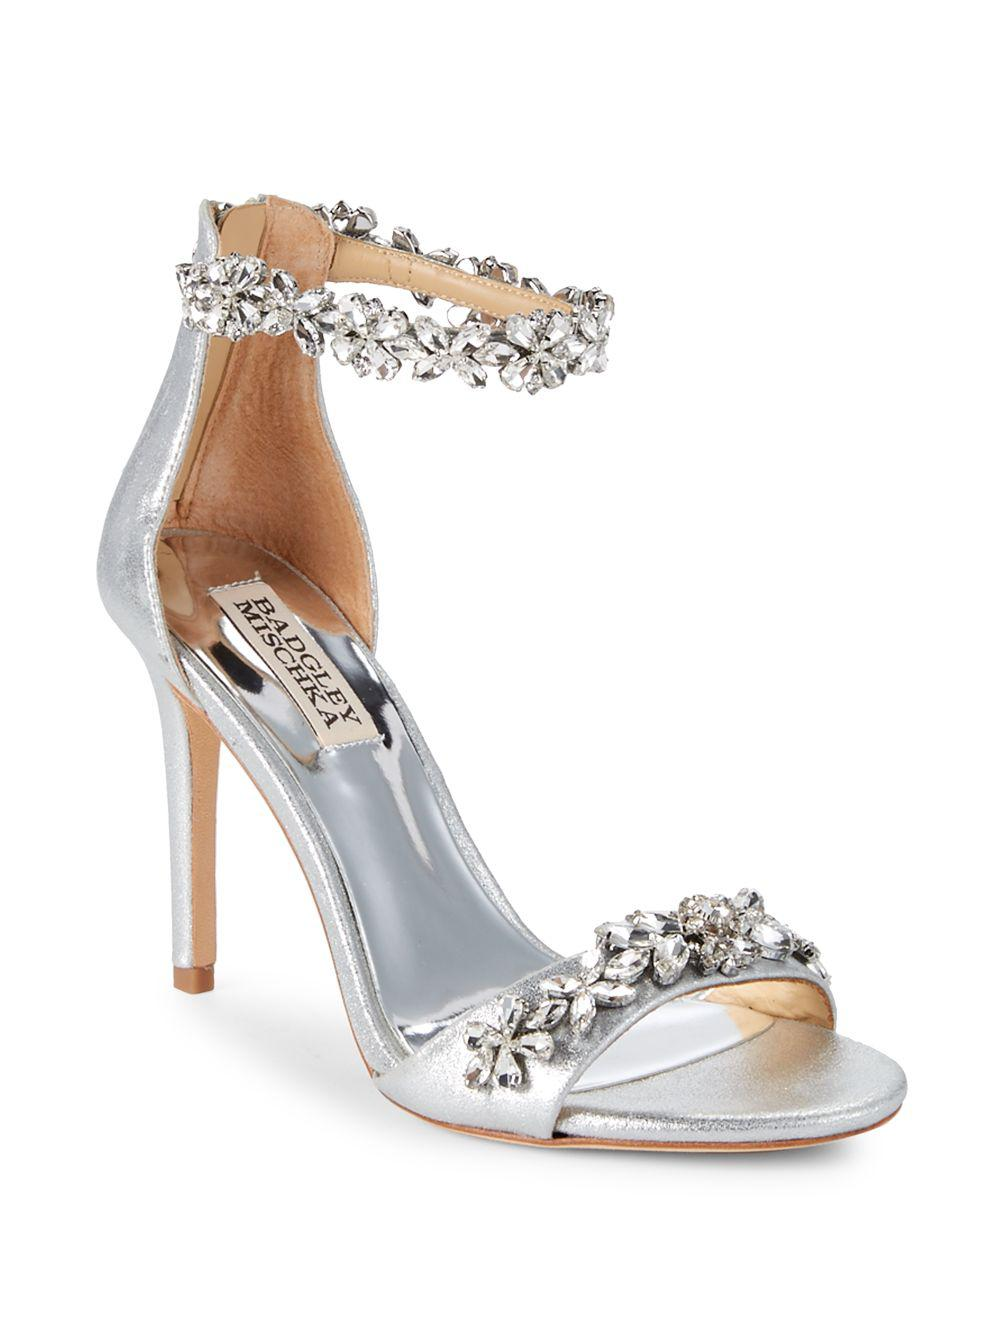 447a5d7bee9 Badgley Mischka. Women s Metallic Valentine Embellished Leather Ankle-strap  Sandals